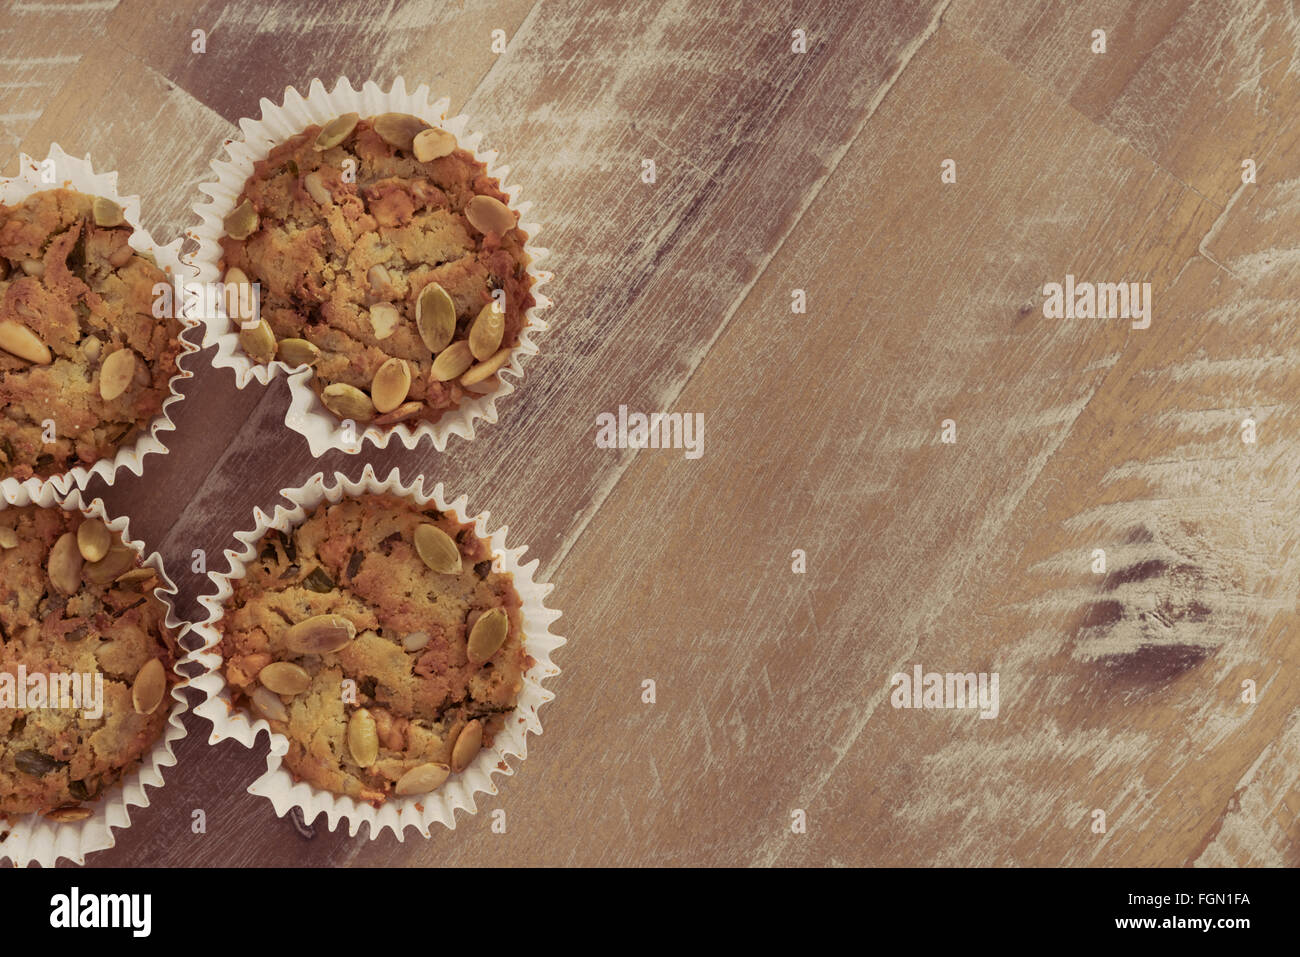 Handmade Savoury Blue Cheese Cupcakes on vintage wooden background, aerial top view, toned filter applied, available - Stock Image